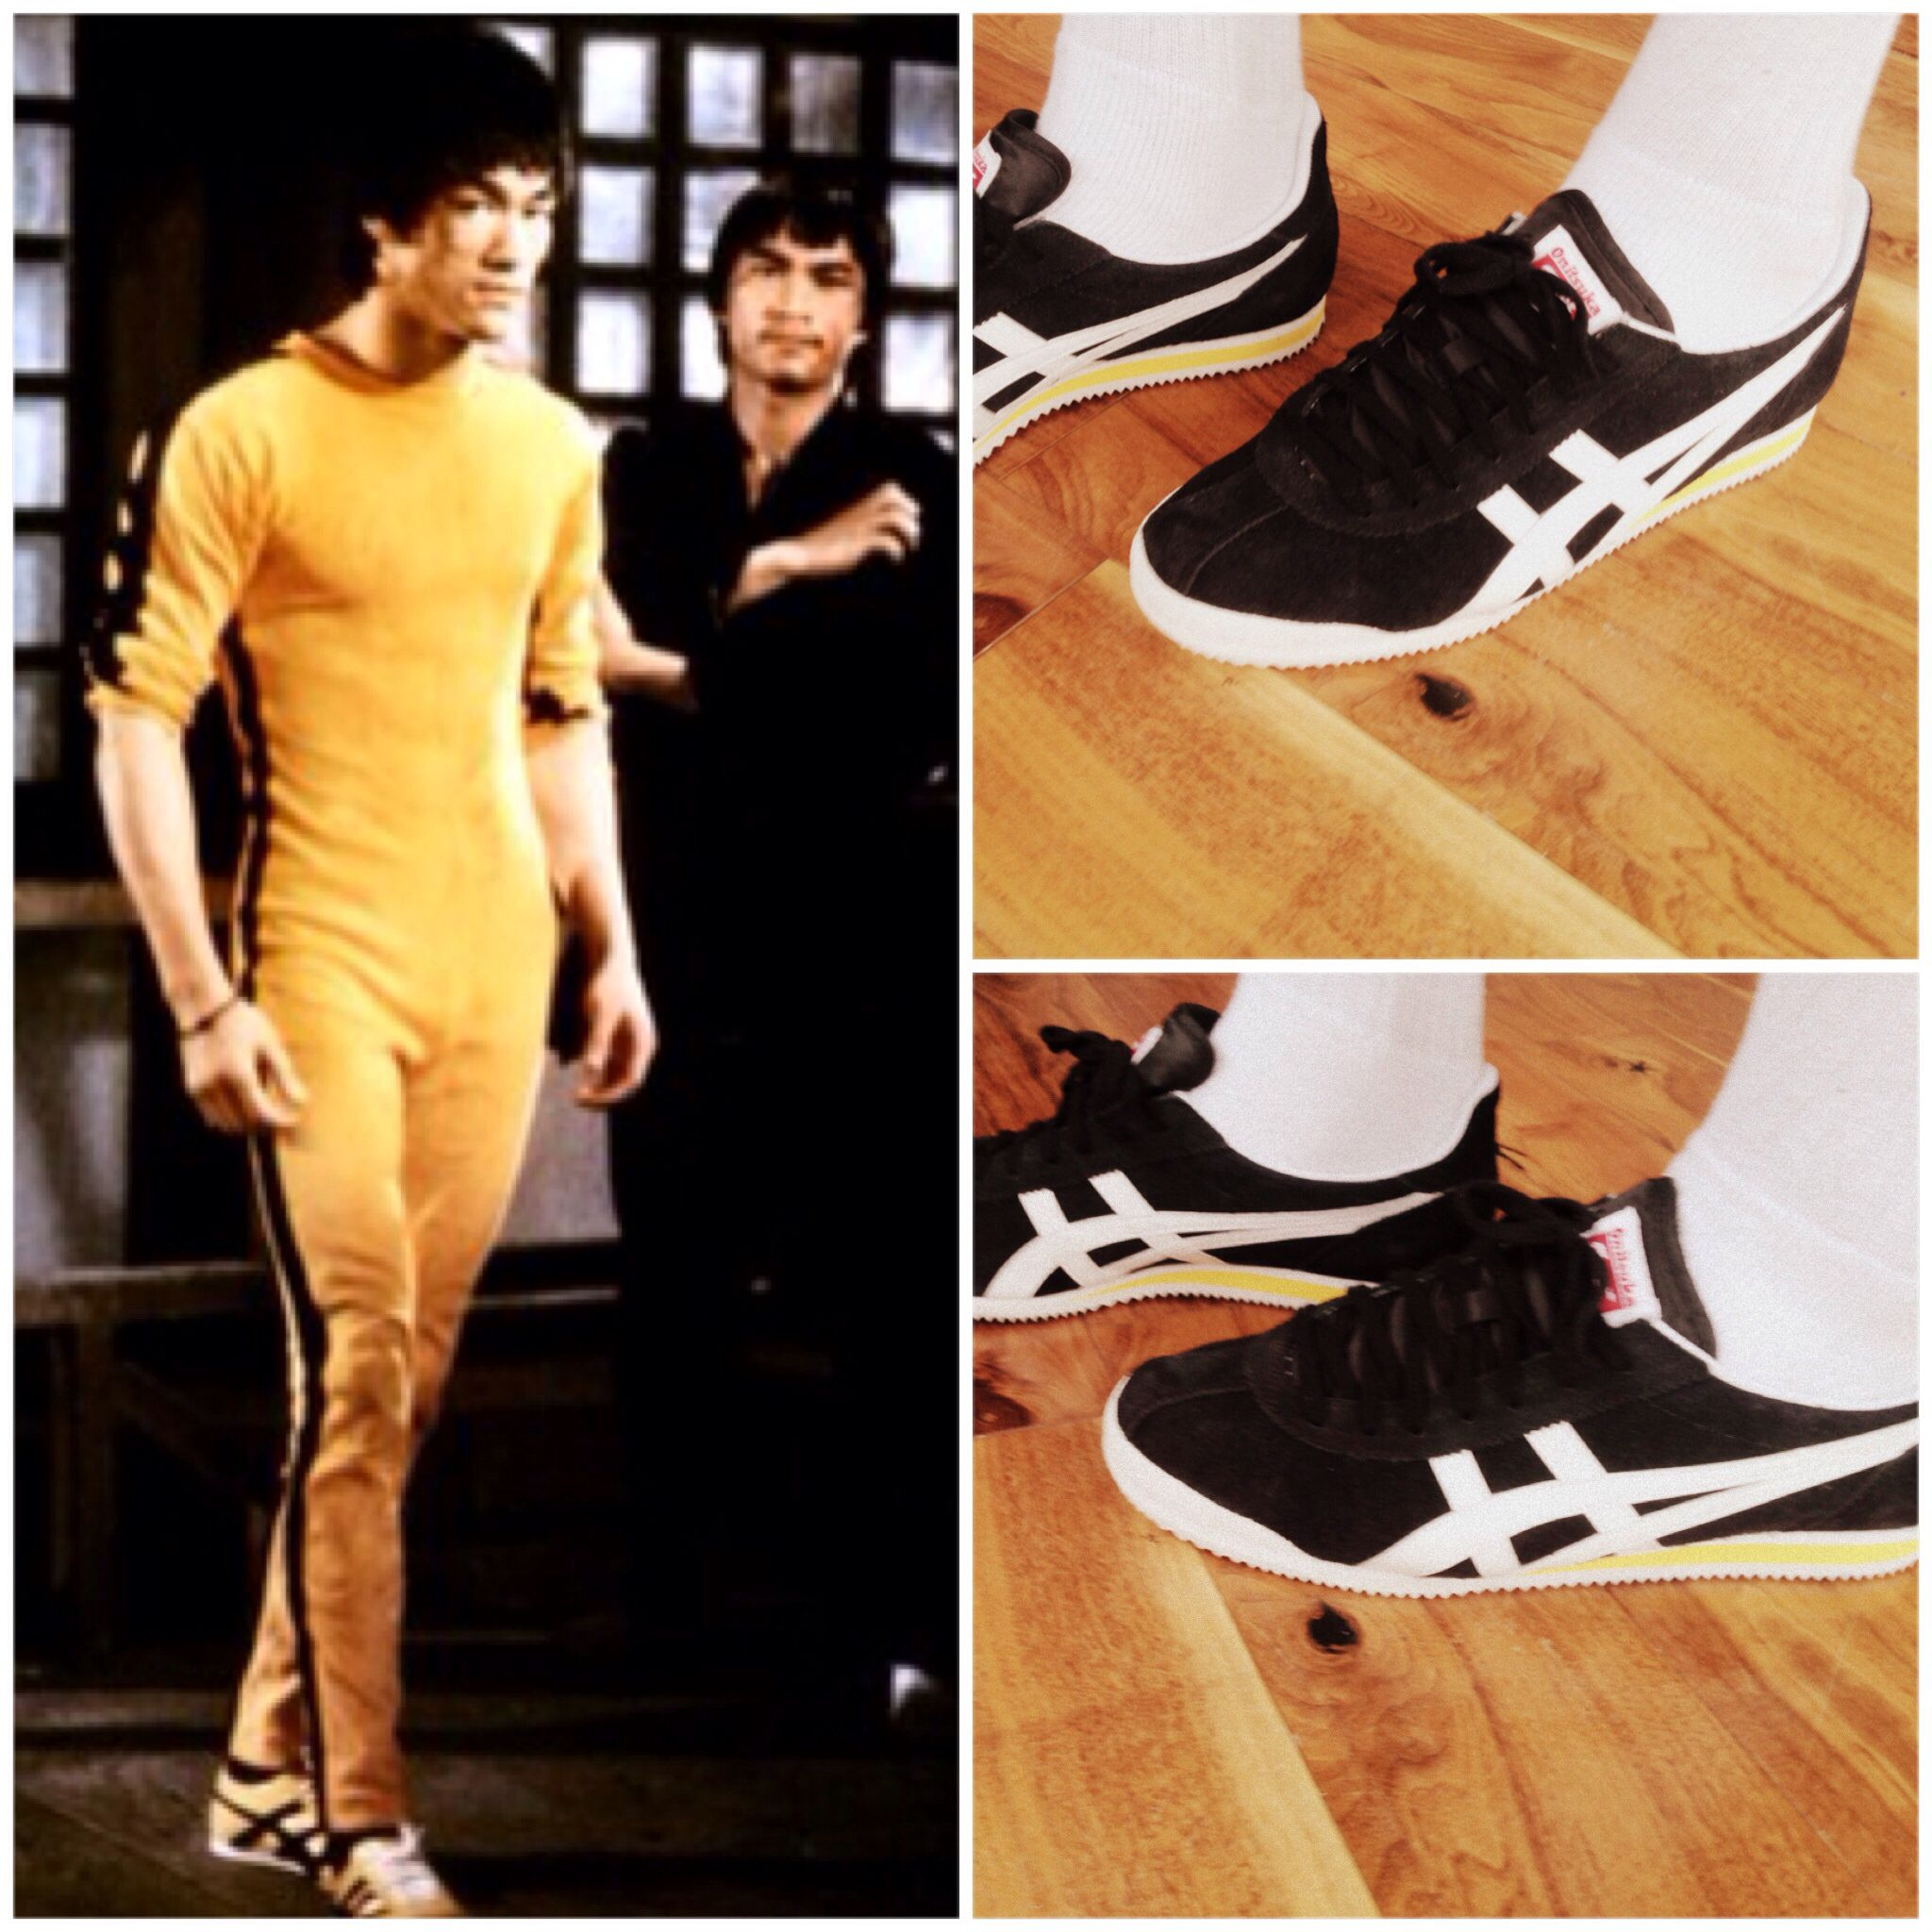 lowest price e7edb 3c2f6 Onitsuka tiger bruce lee casual sport sneakers asics black ...